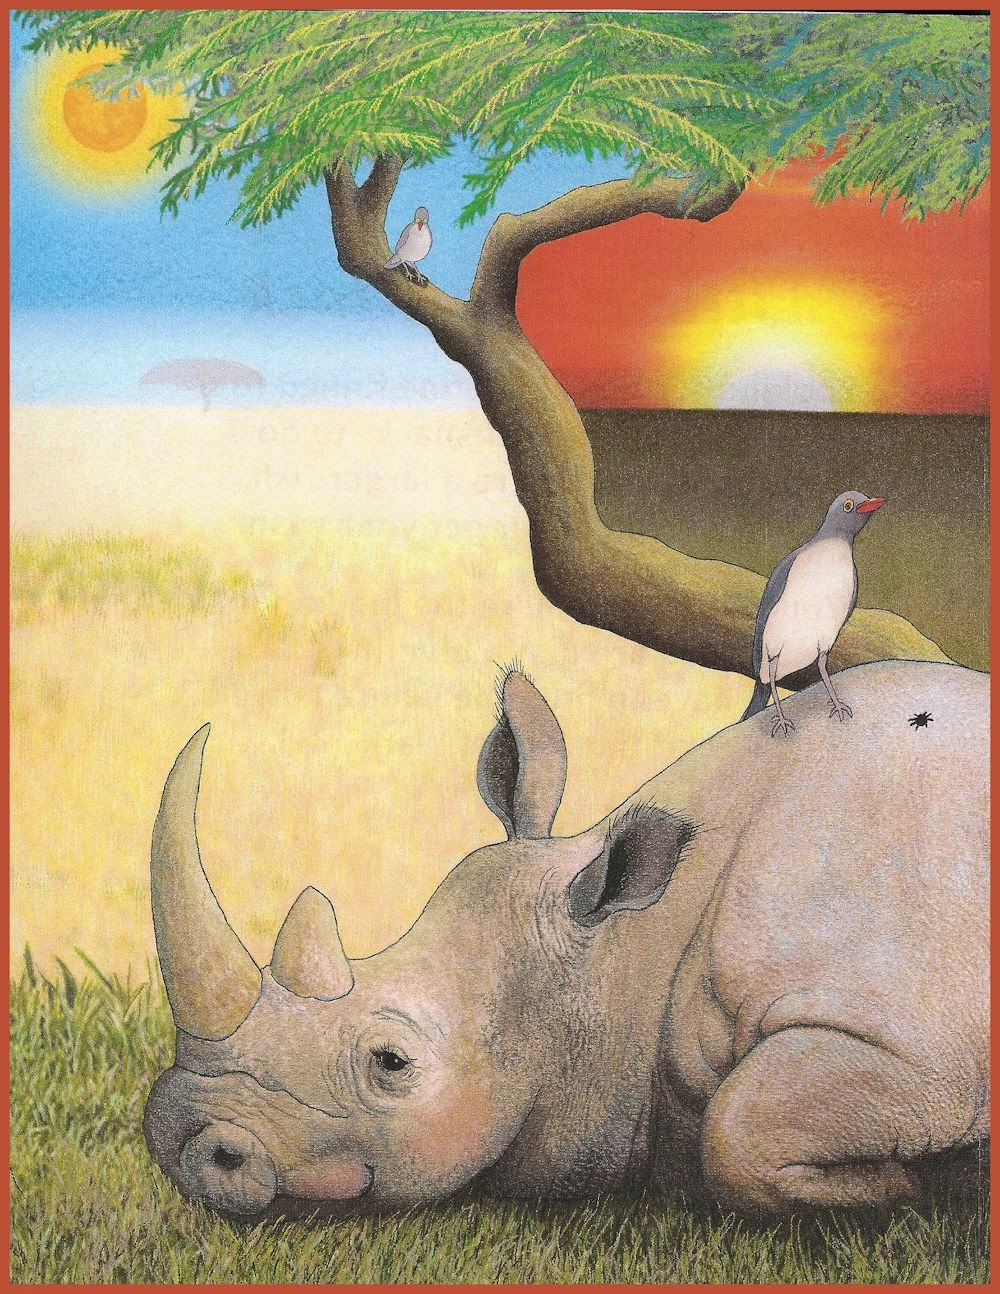 tick bird and rhinoceros relationship with god